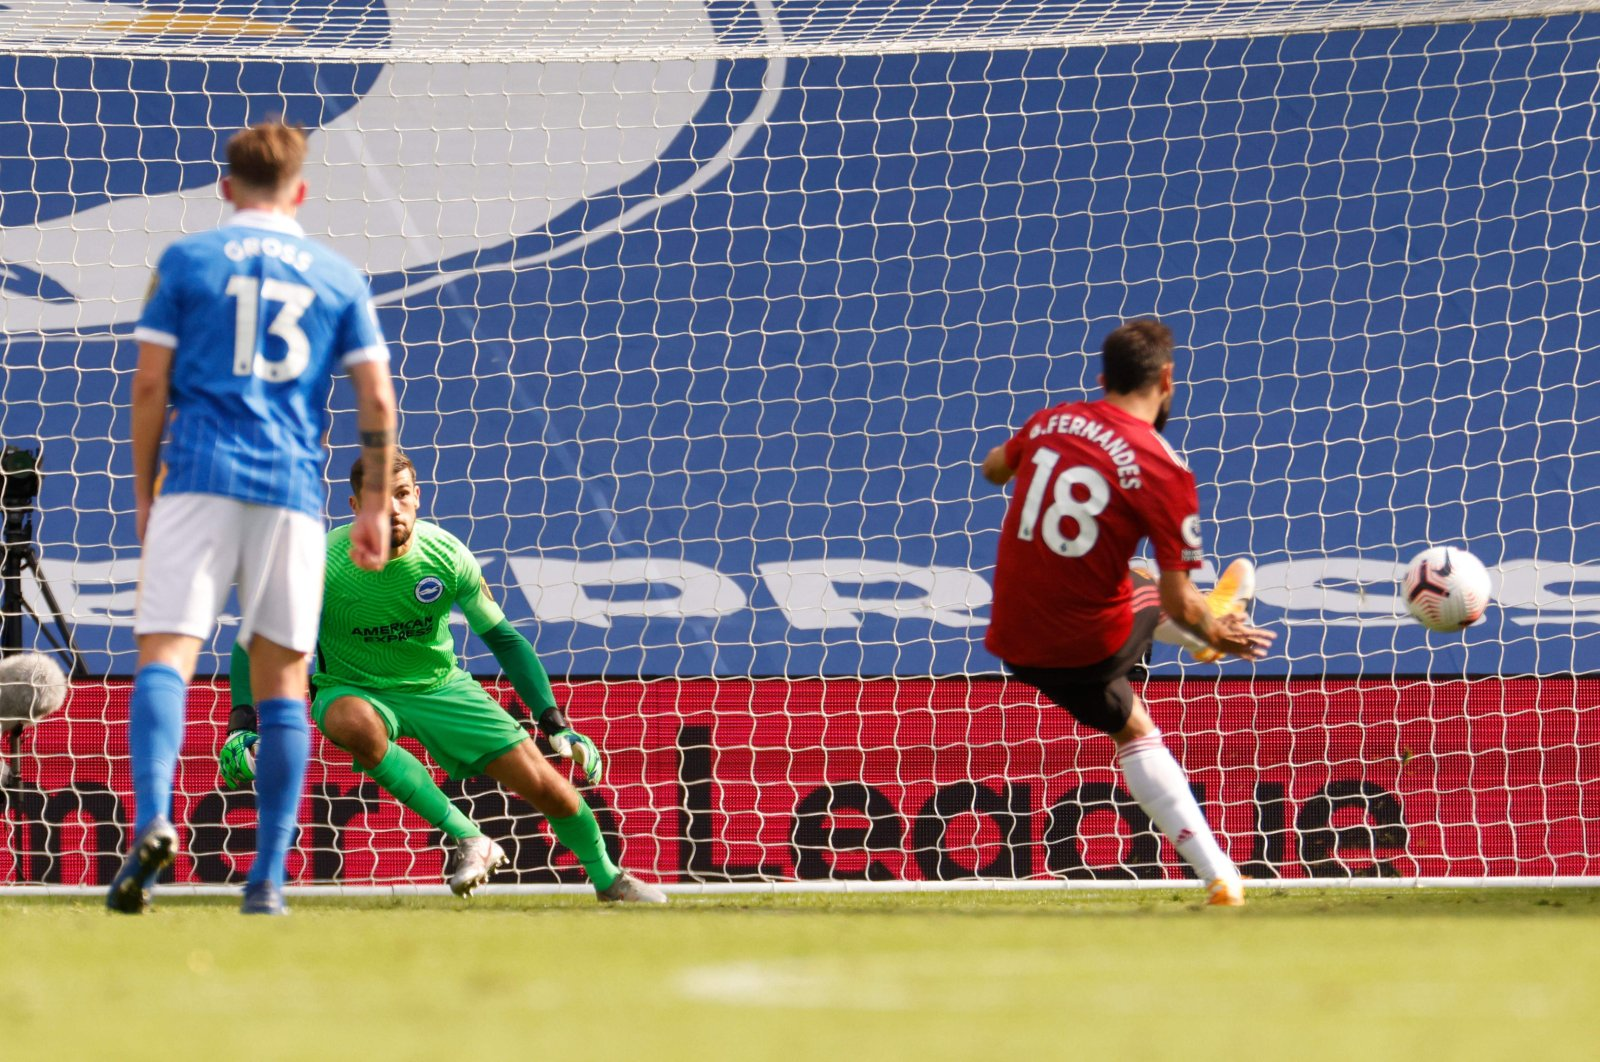 Manchester United's Portuguese midfielder Bruno Fernandes (R) takes a penalty and scores his team's third goal during the English Premier League football match between Brighton and Hove Albion and Manchester United at the American Express Community Stadium in Brighton, southern England on September 26, 2020. (AFP Photo)